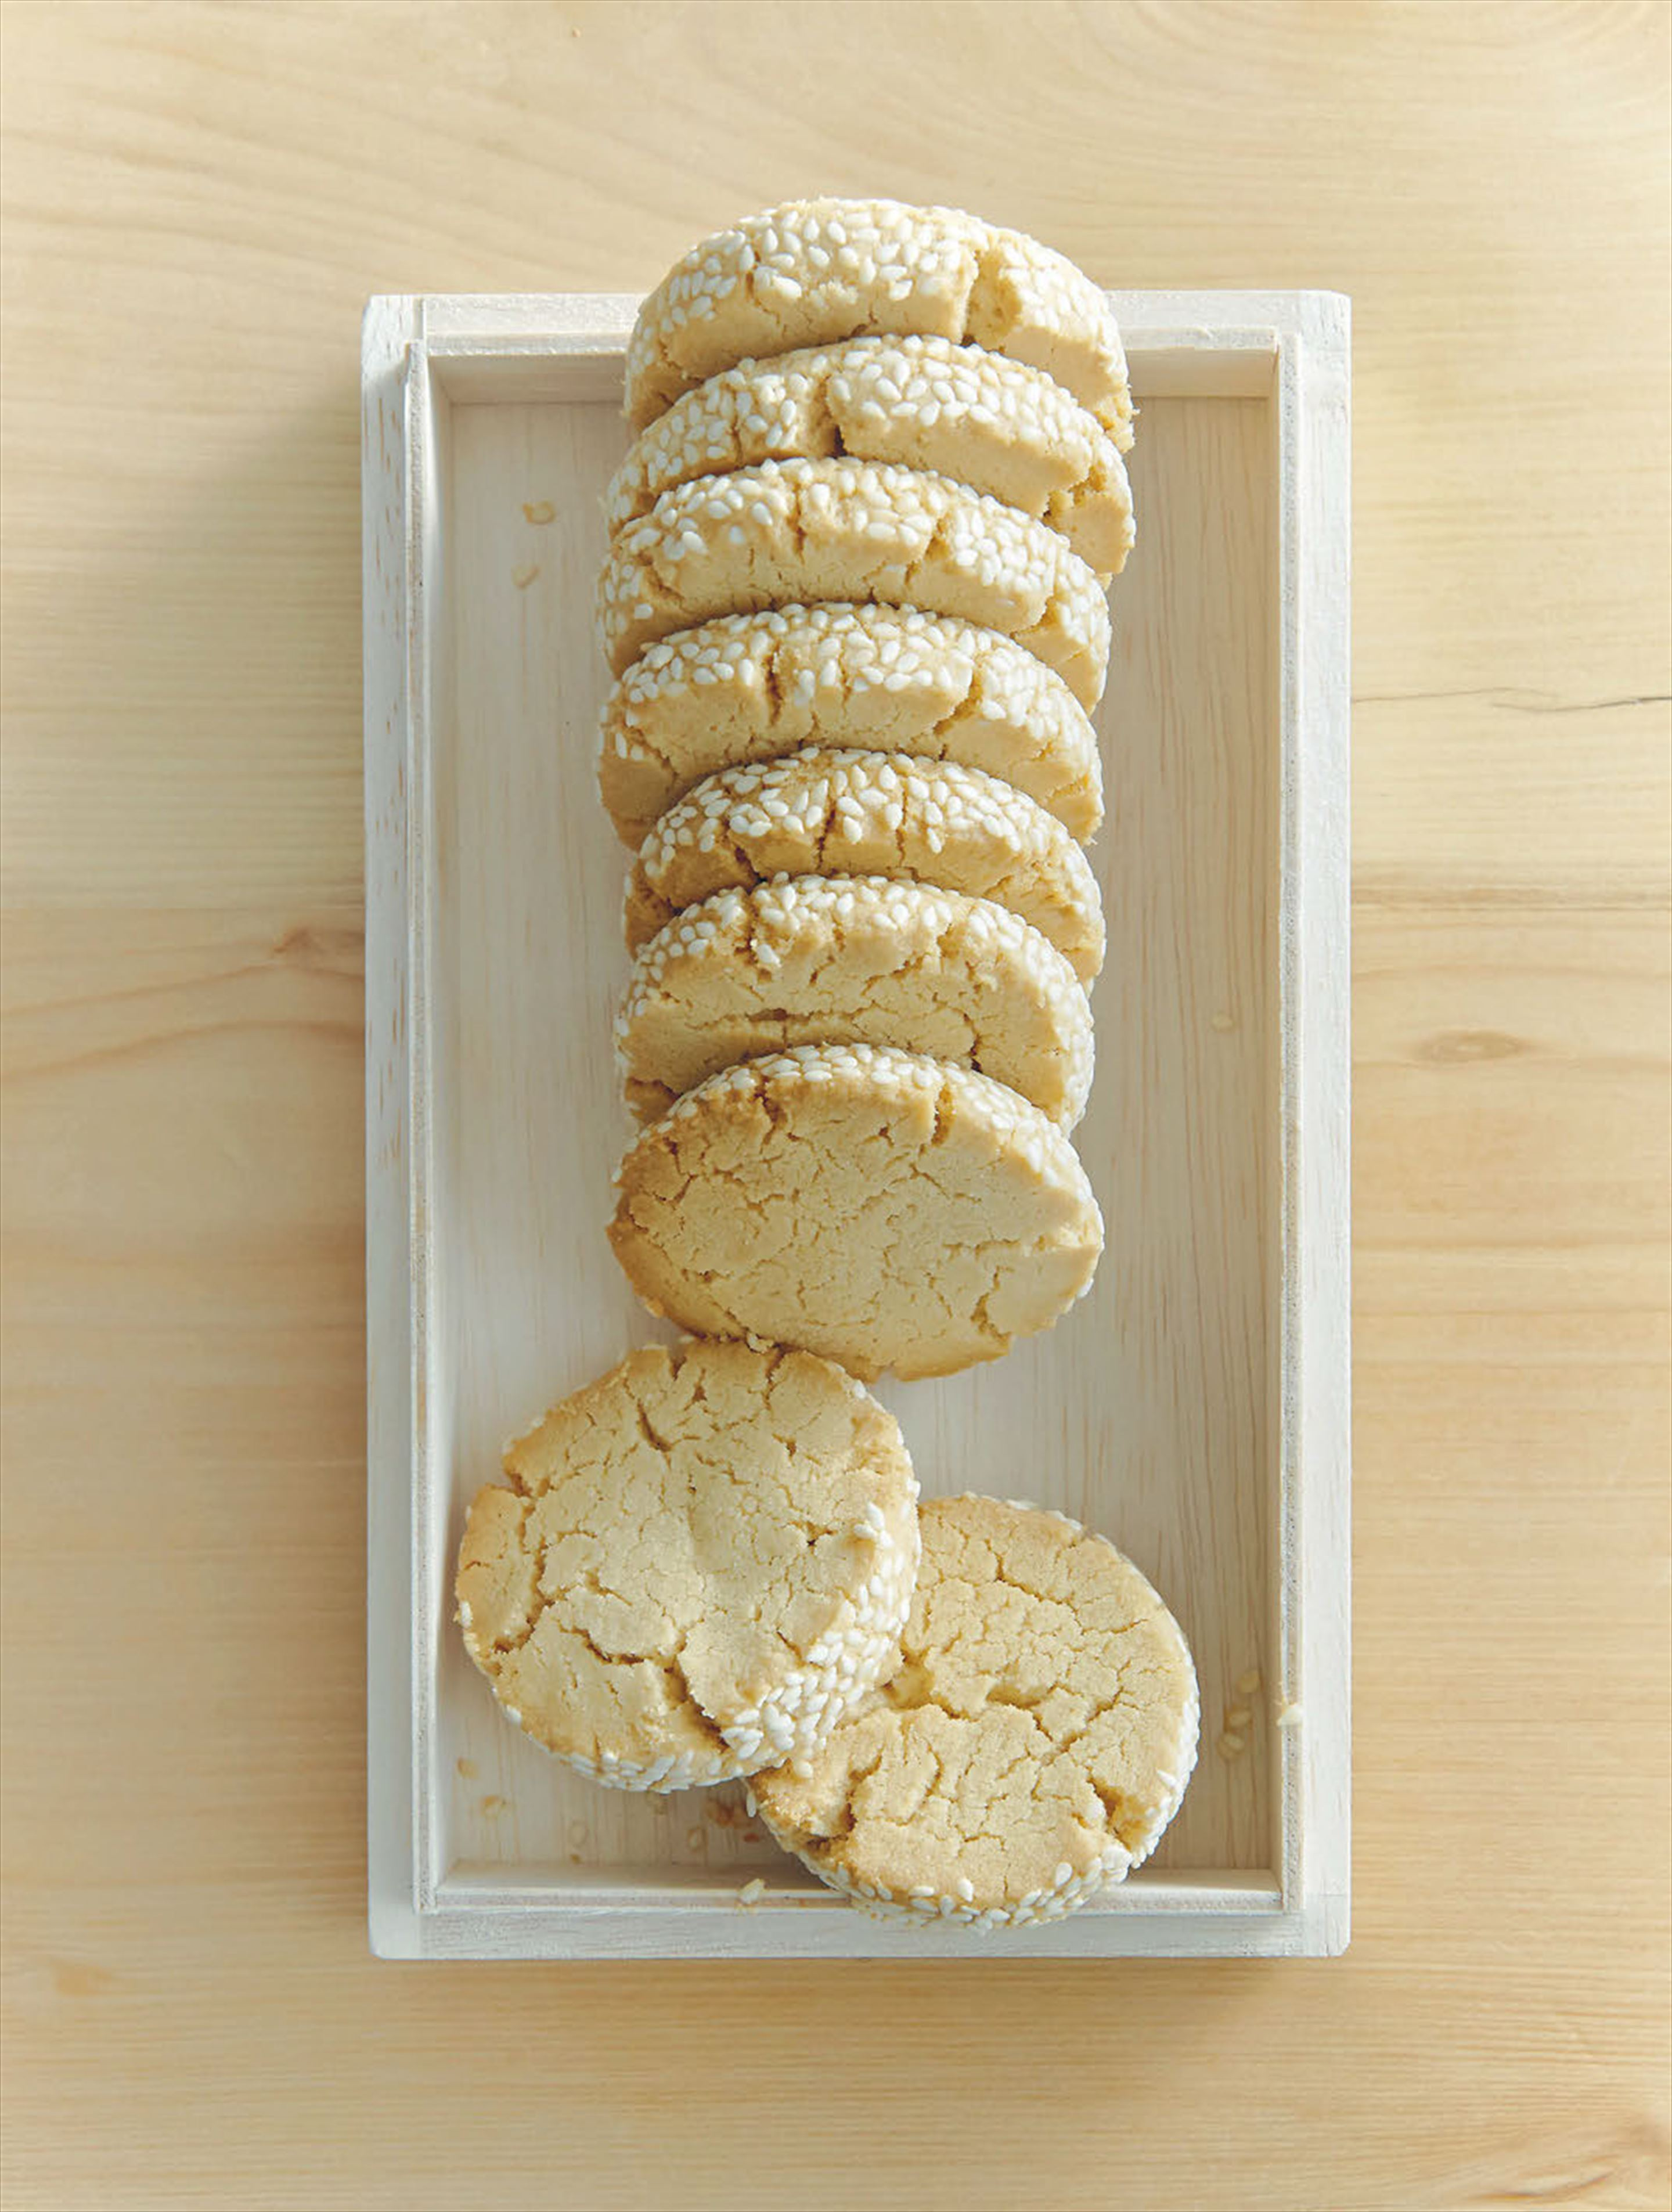 Peanut and sesame cookies